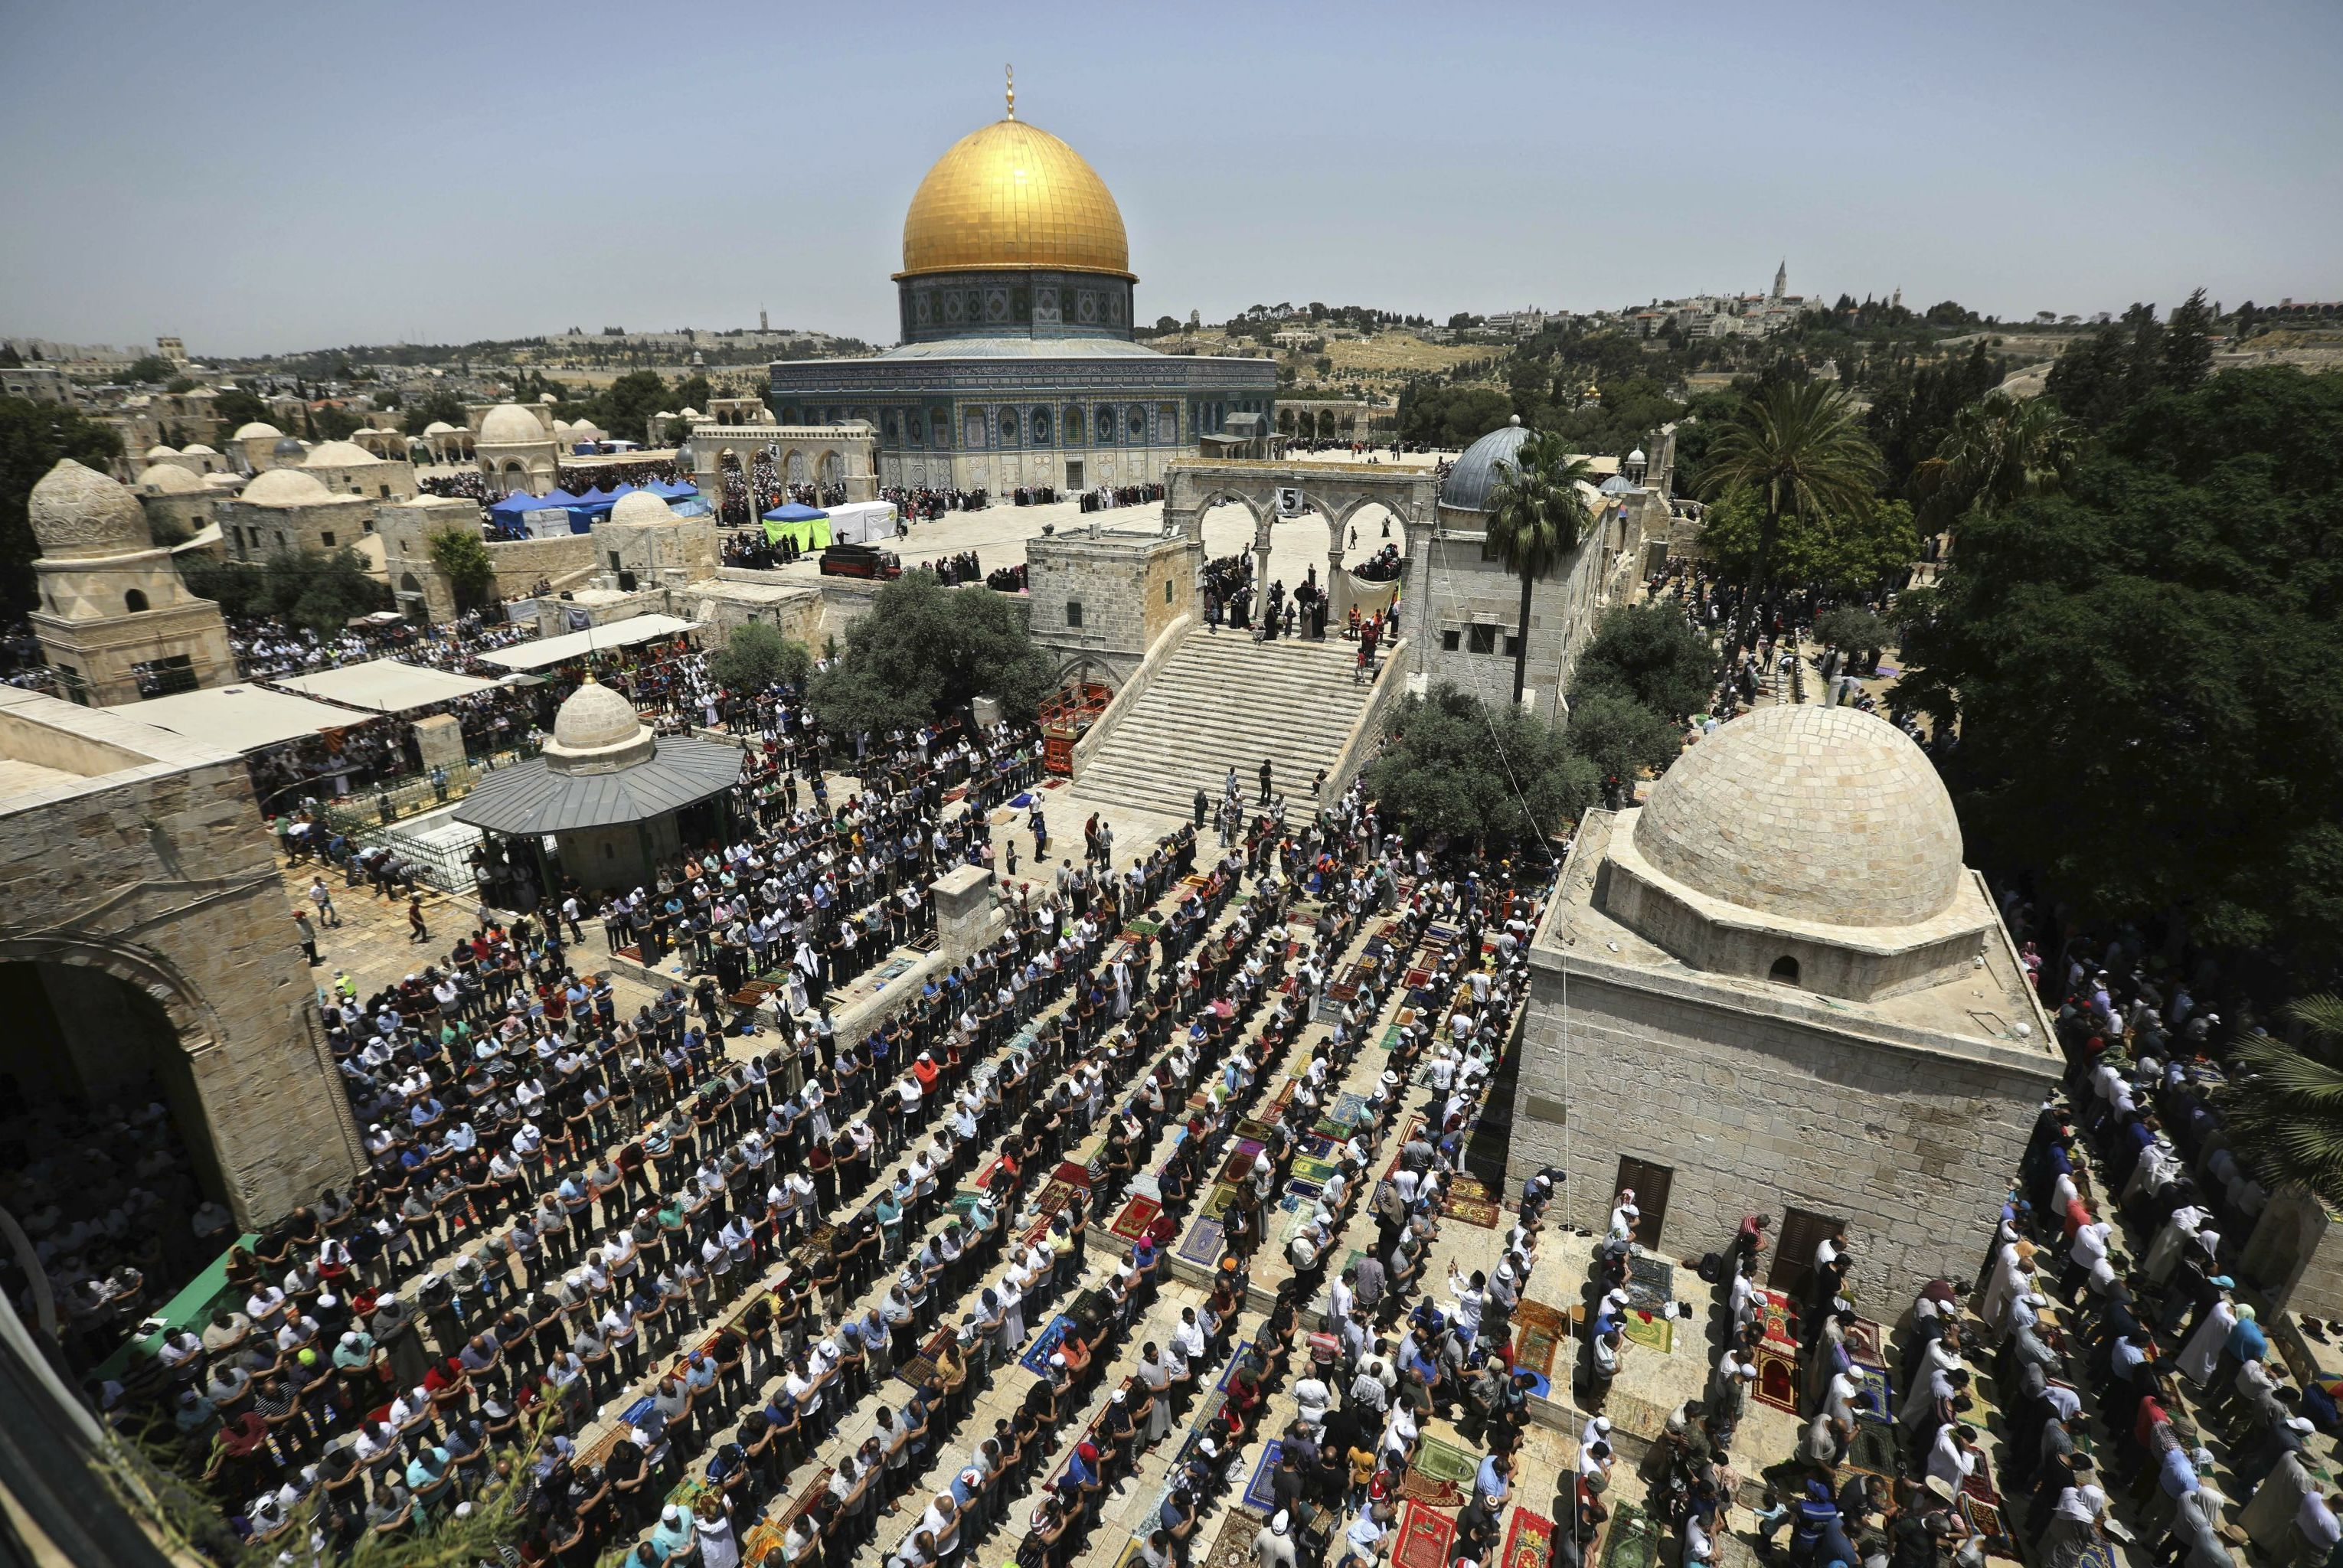 Palestinian worshipers pray during the last Friday of the holy month of Ramadan at the Al Aqsa Mosque compound in Jerusalem's old city